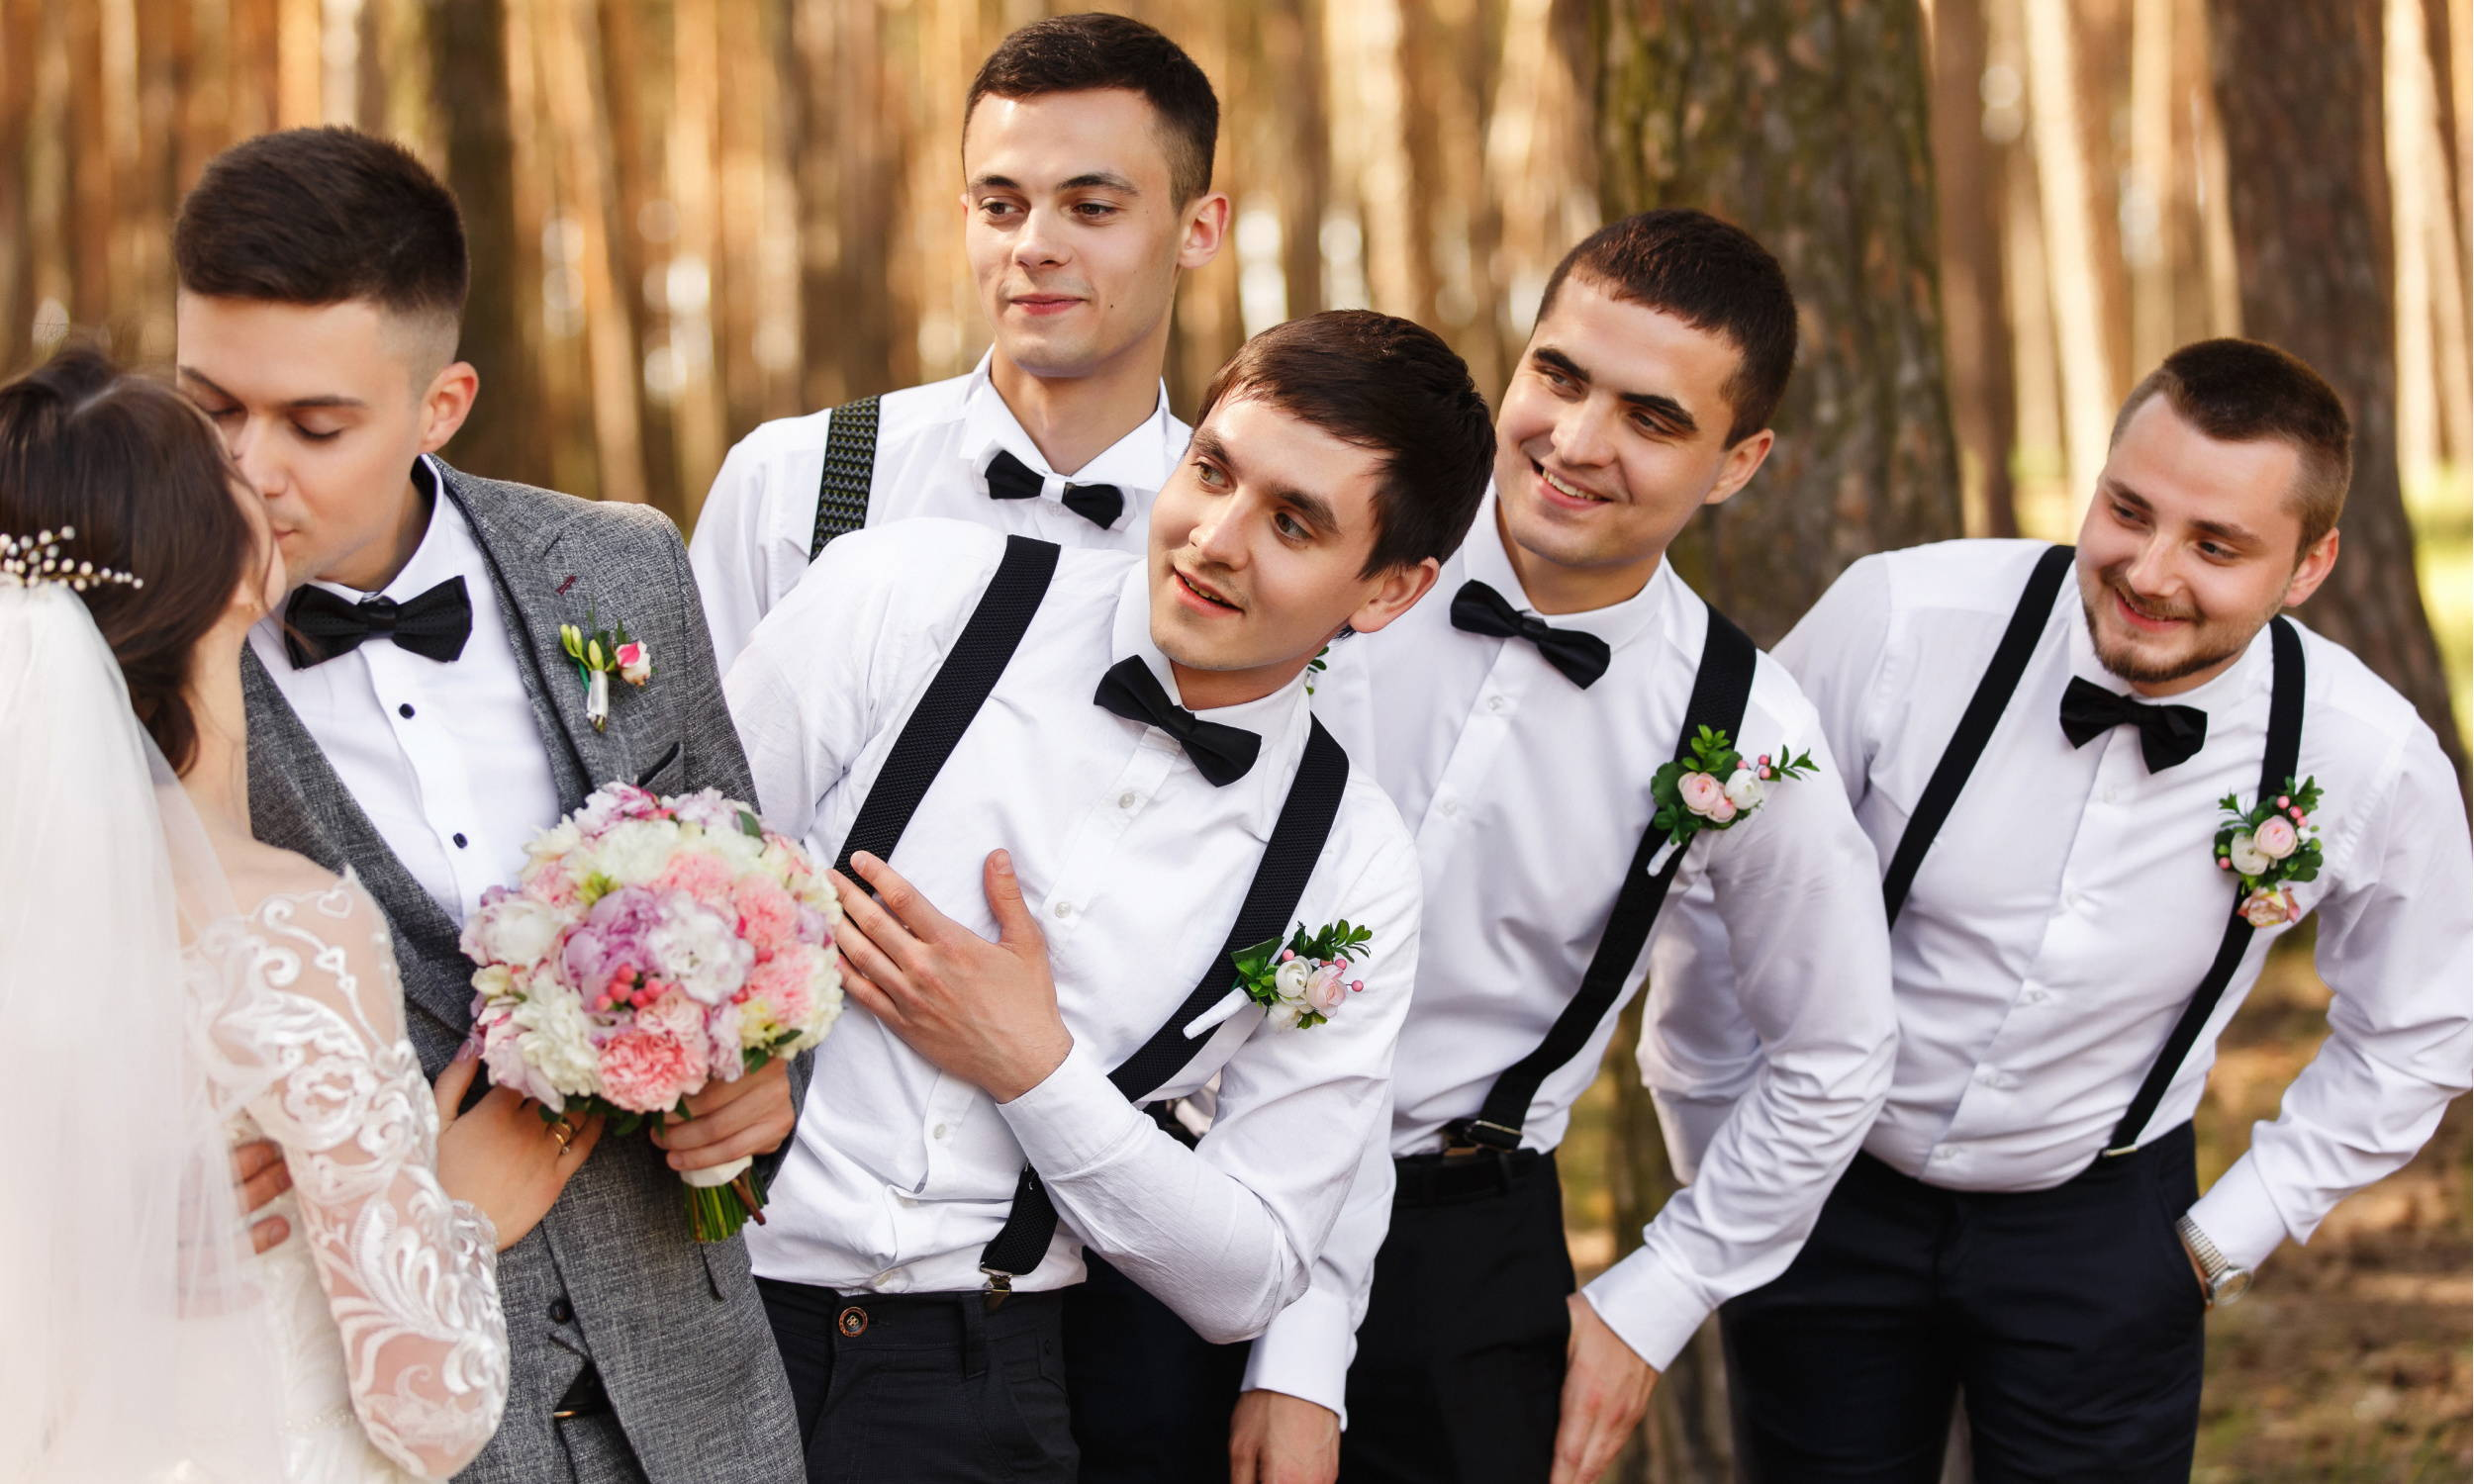 How to Wear Suspenders - Groom and Groomsmen Wearing Black Suspenders & Black Bow Tie